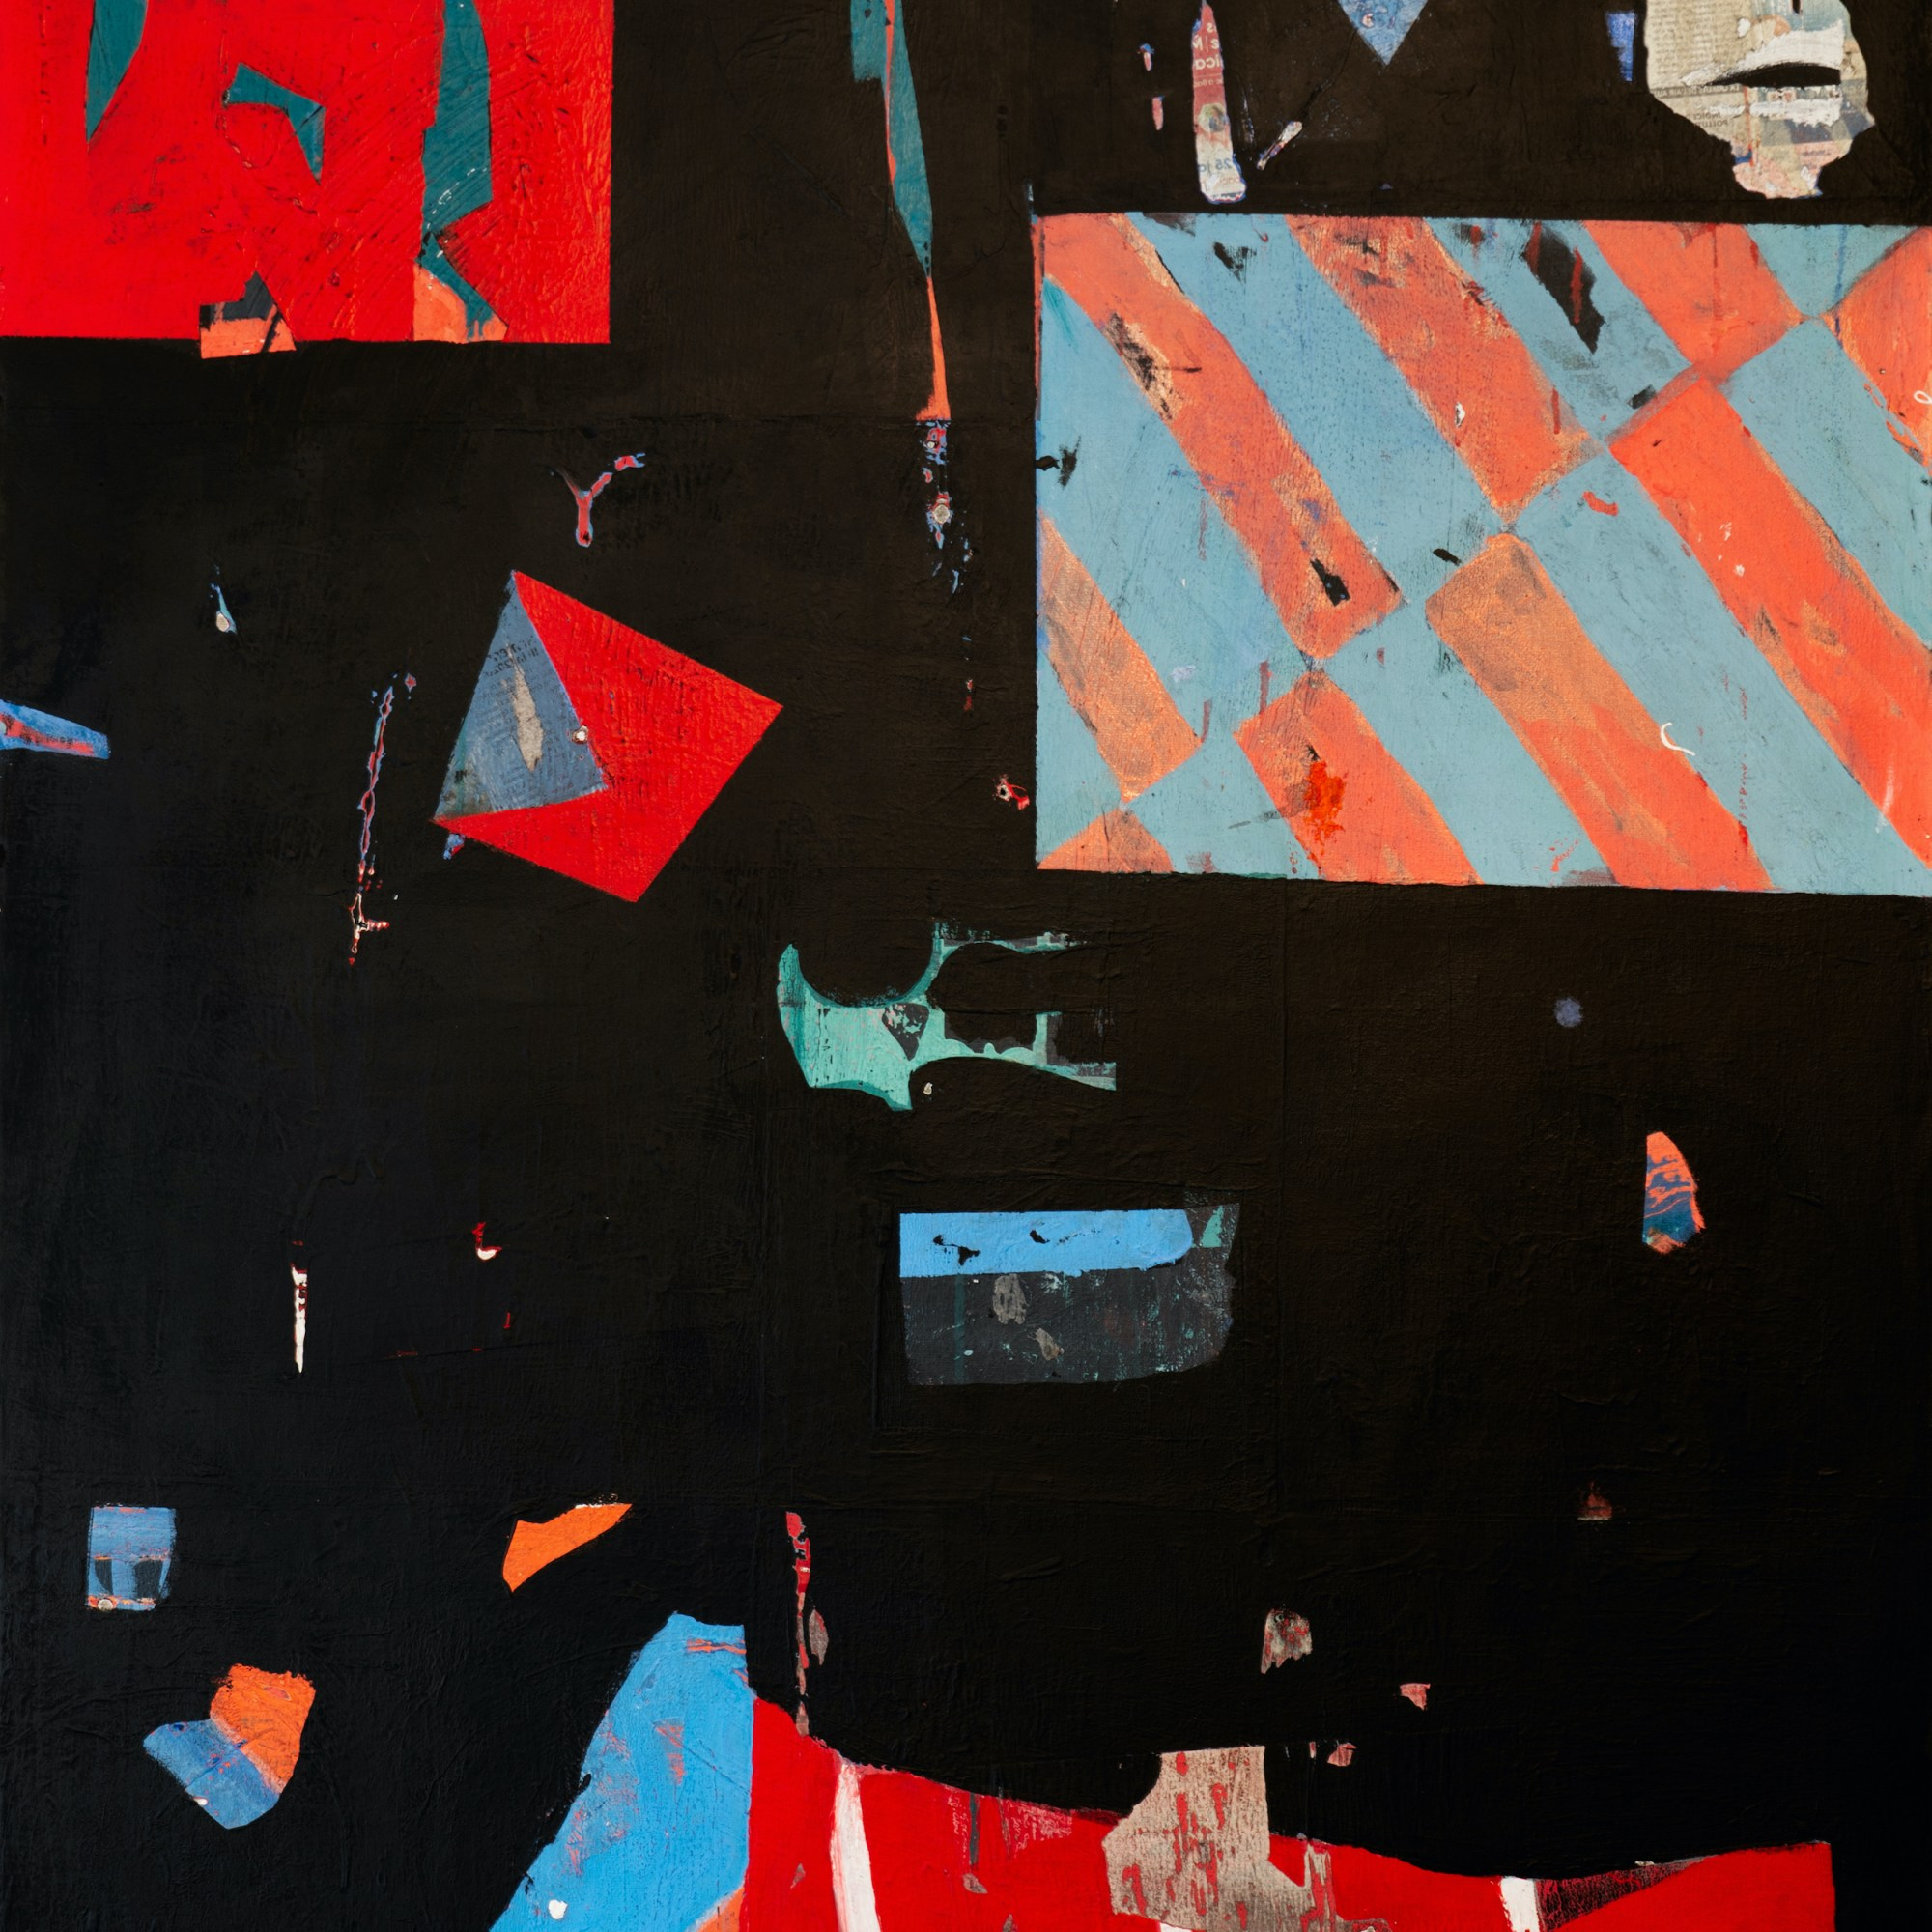 tableau abstrait abstract painting Acrylique et collage sur toile Acrylic and collage on canvas